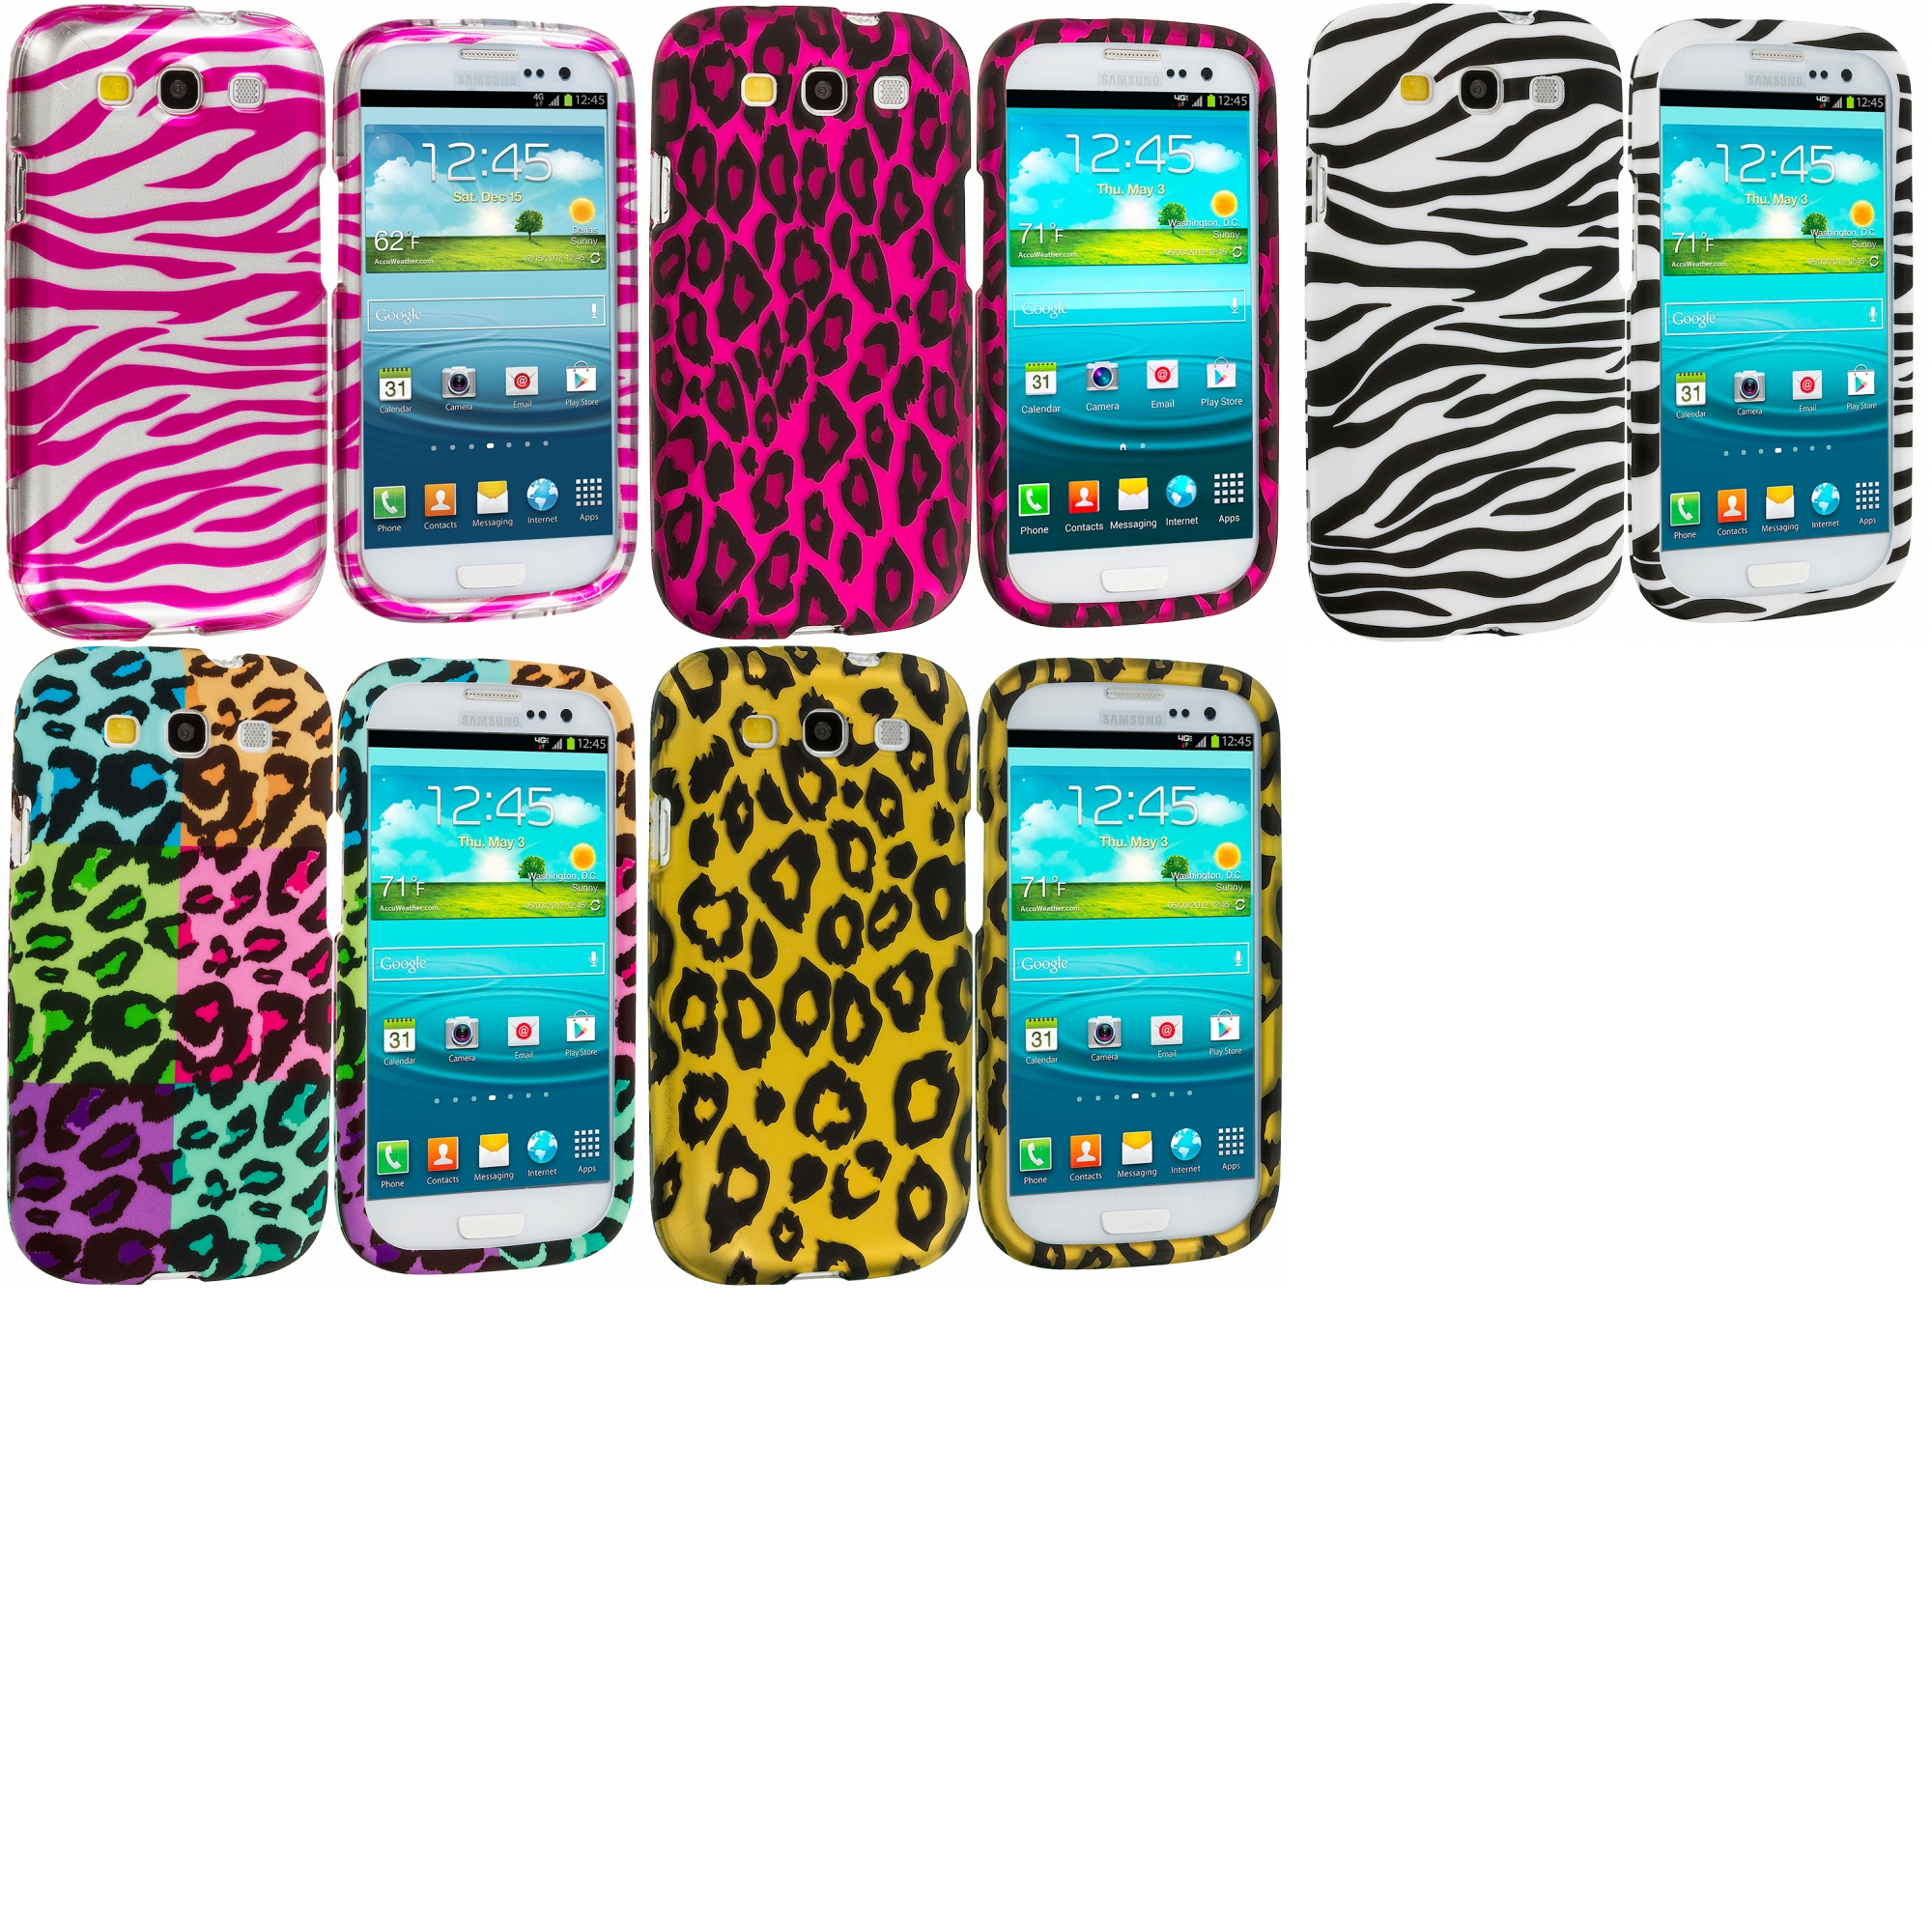 Samsung Galaxy S3 5 in 1 Combo Bundle Pack - Leopard Zebra Hard Rubberized Design Case Cover